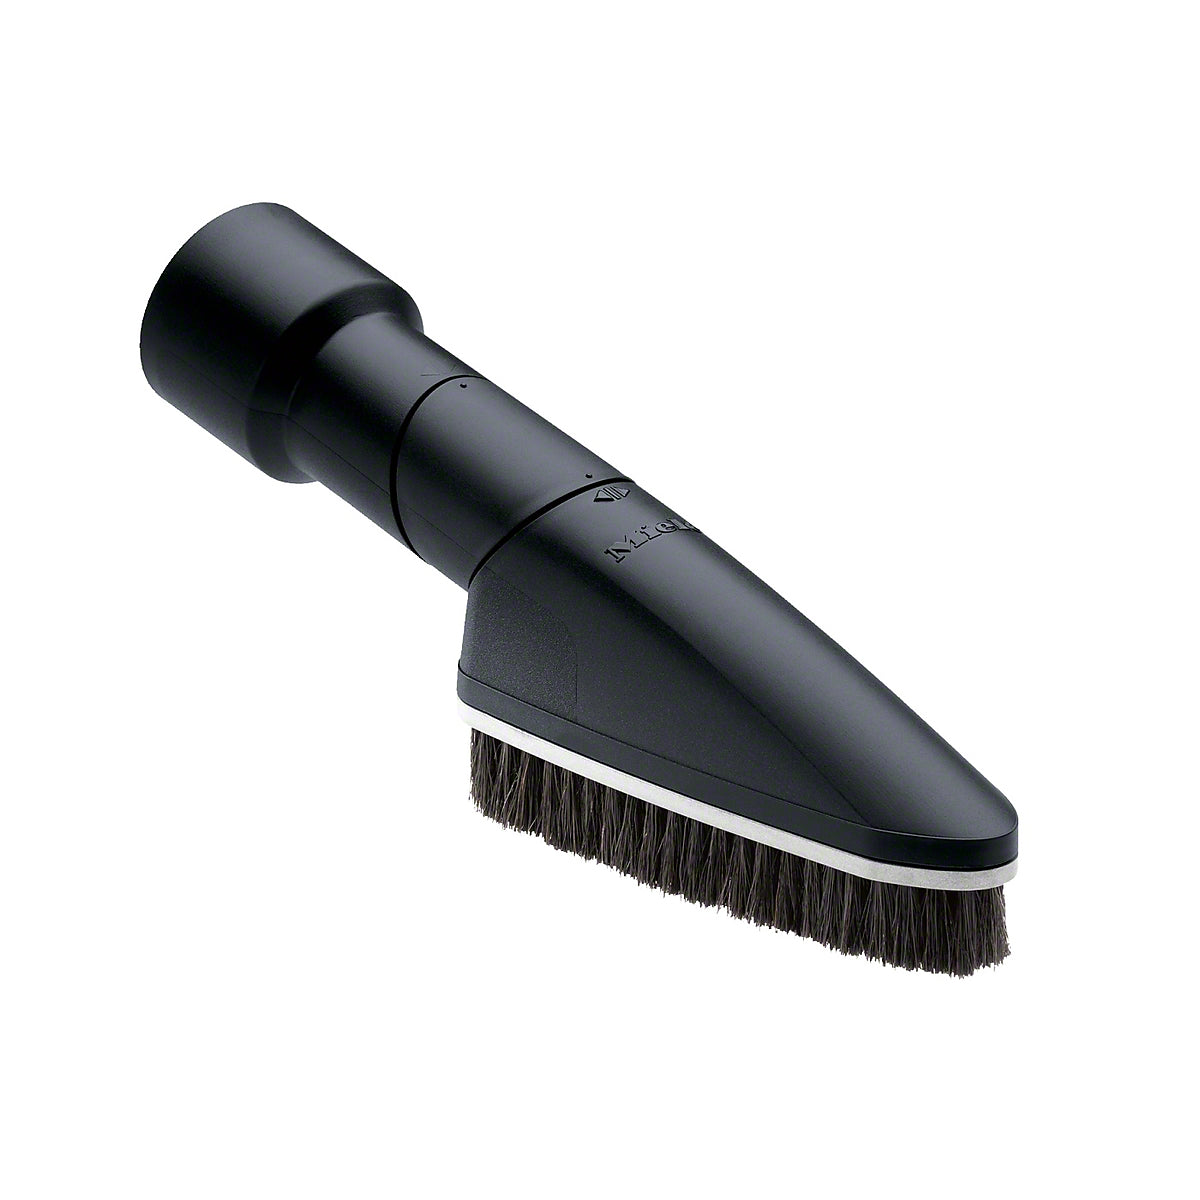 Miele SUB 20 Flexibly adjustable universal brush with natural bristles - Super Vacs